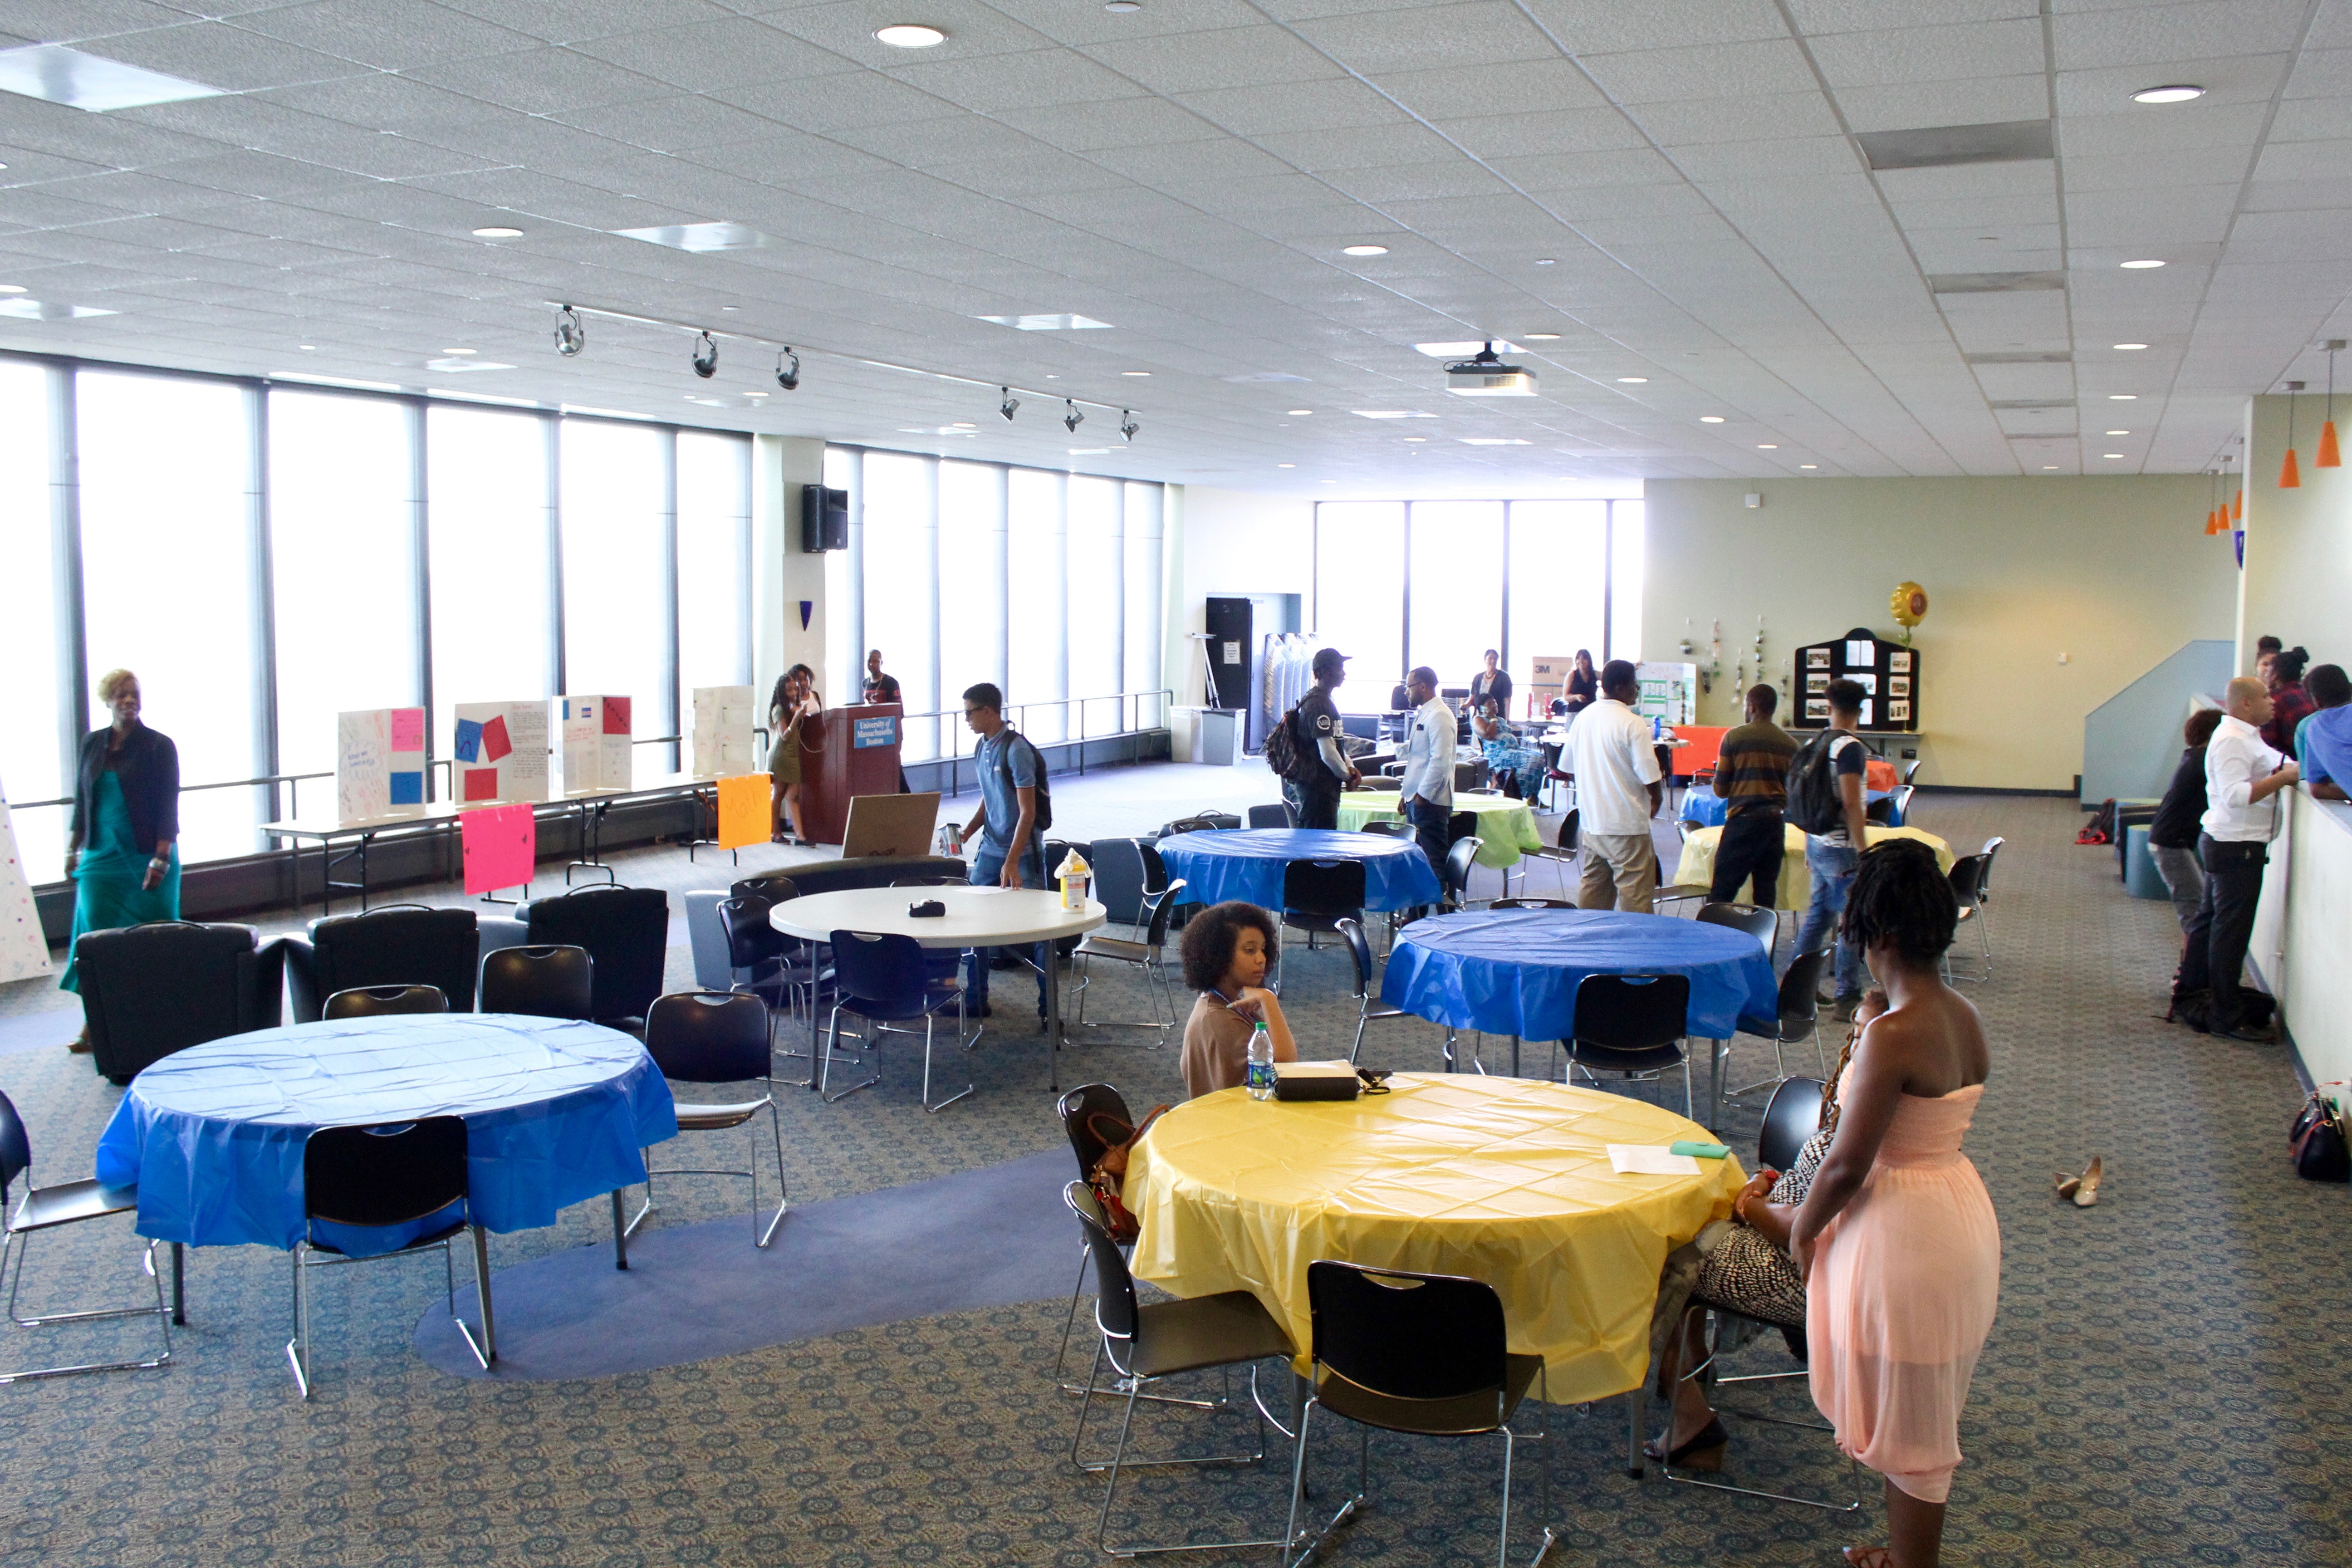 In the evening, the Project REACH setting up tables and their projects at the Ryan Lounge.